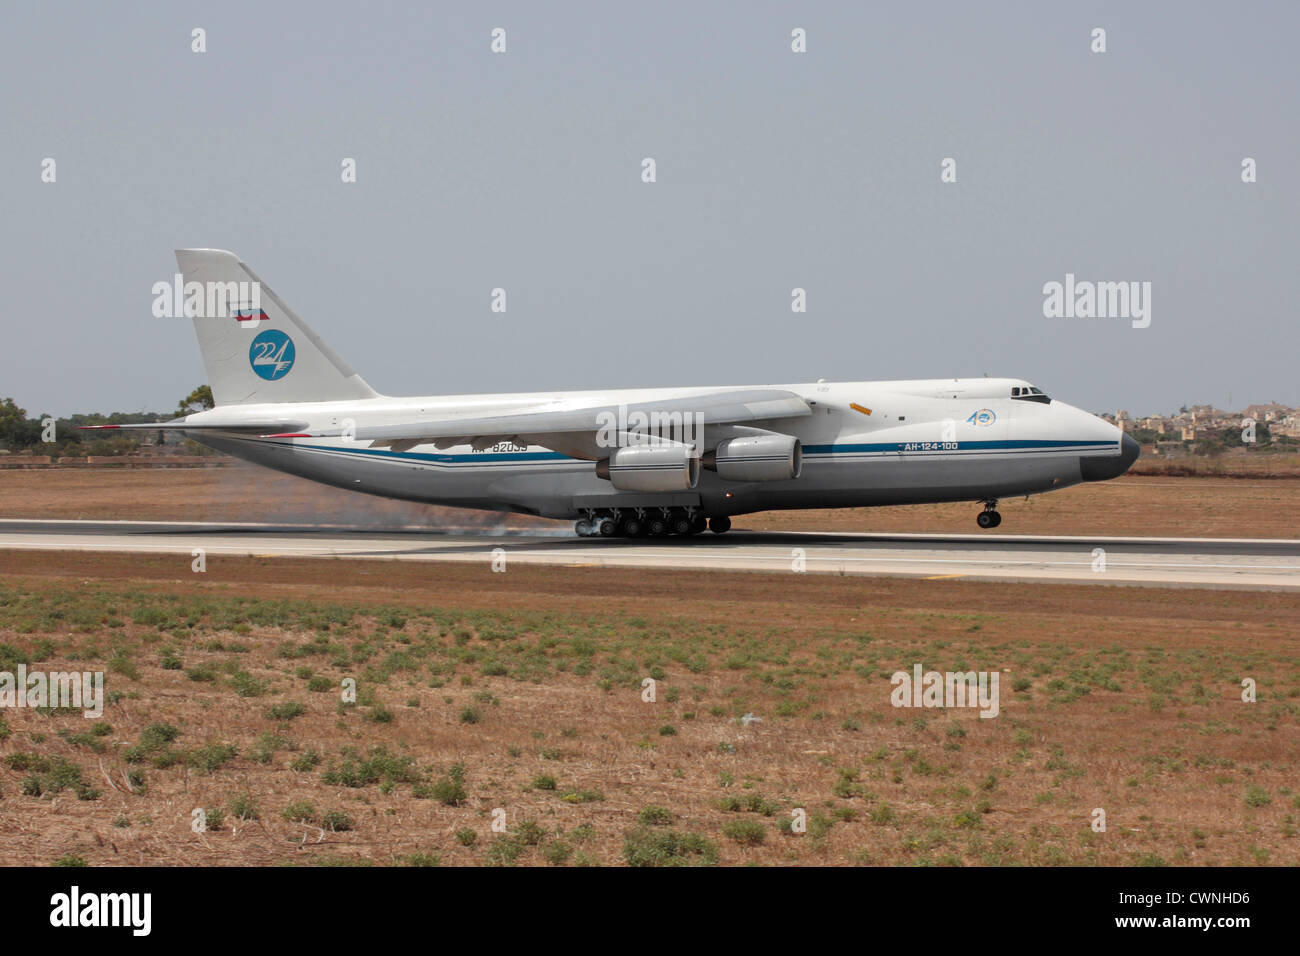 Antonov An-124 Ruslan heavy cargo jet of the Russian Air Force touching down on arrival in Malta - Stock Image